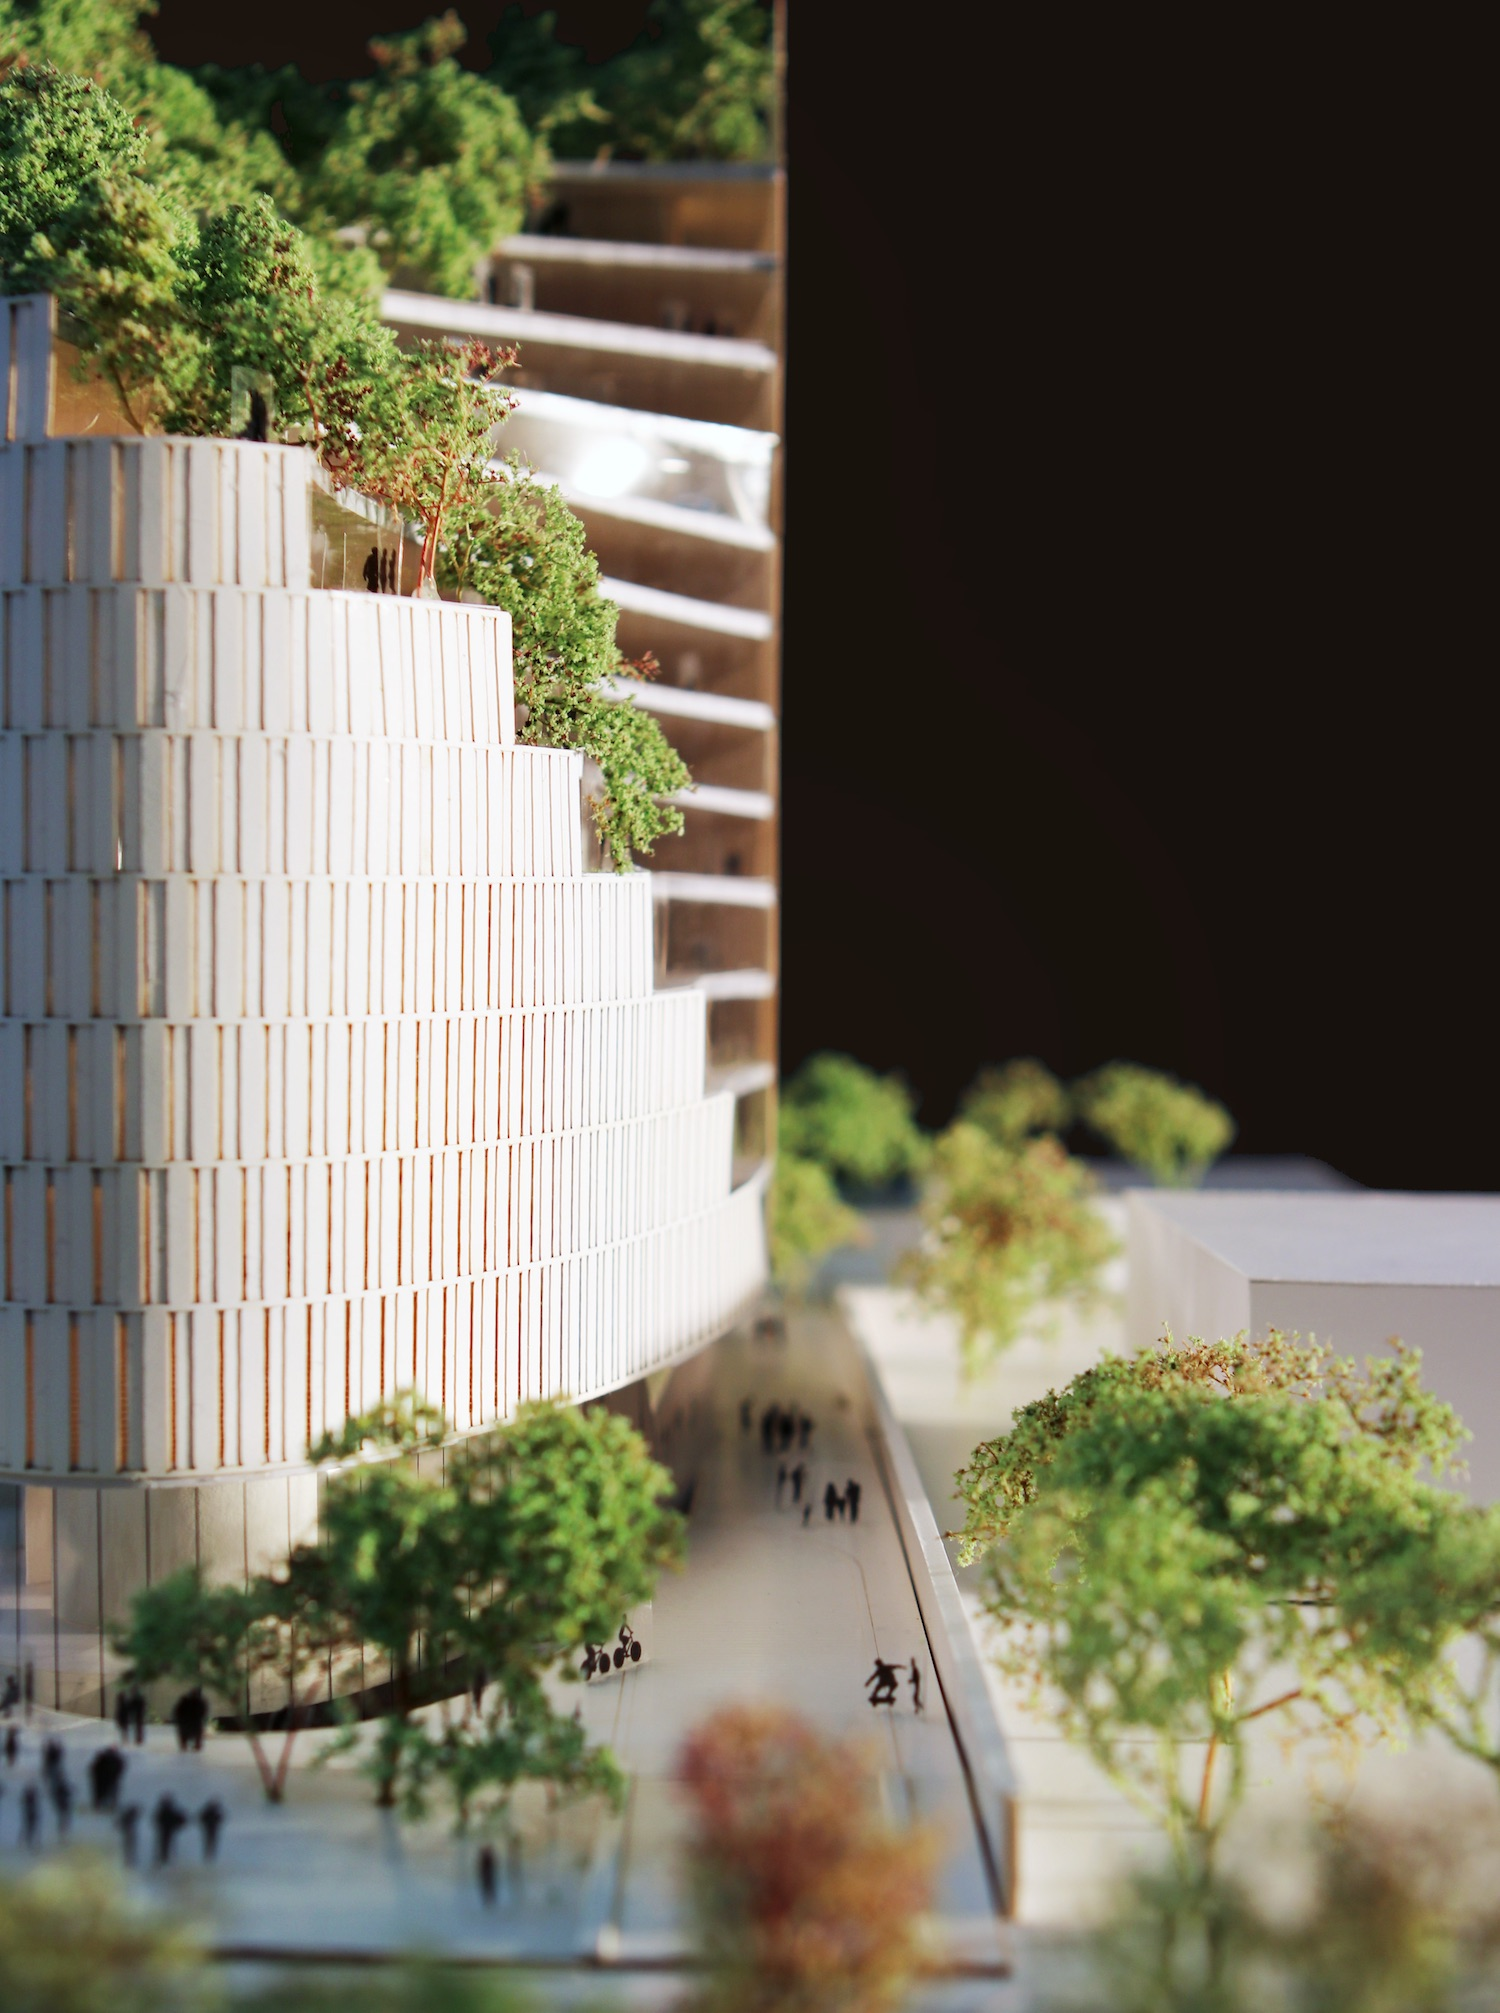 green trees used in making architectural model